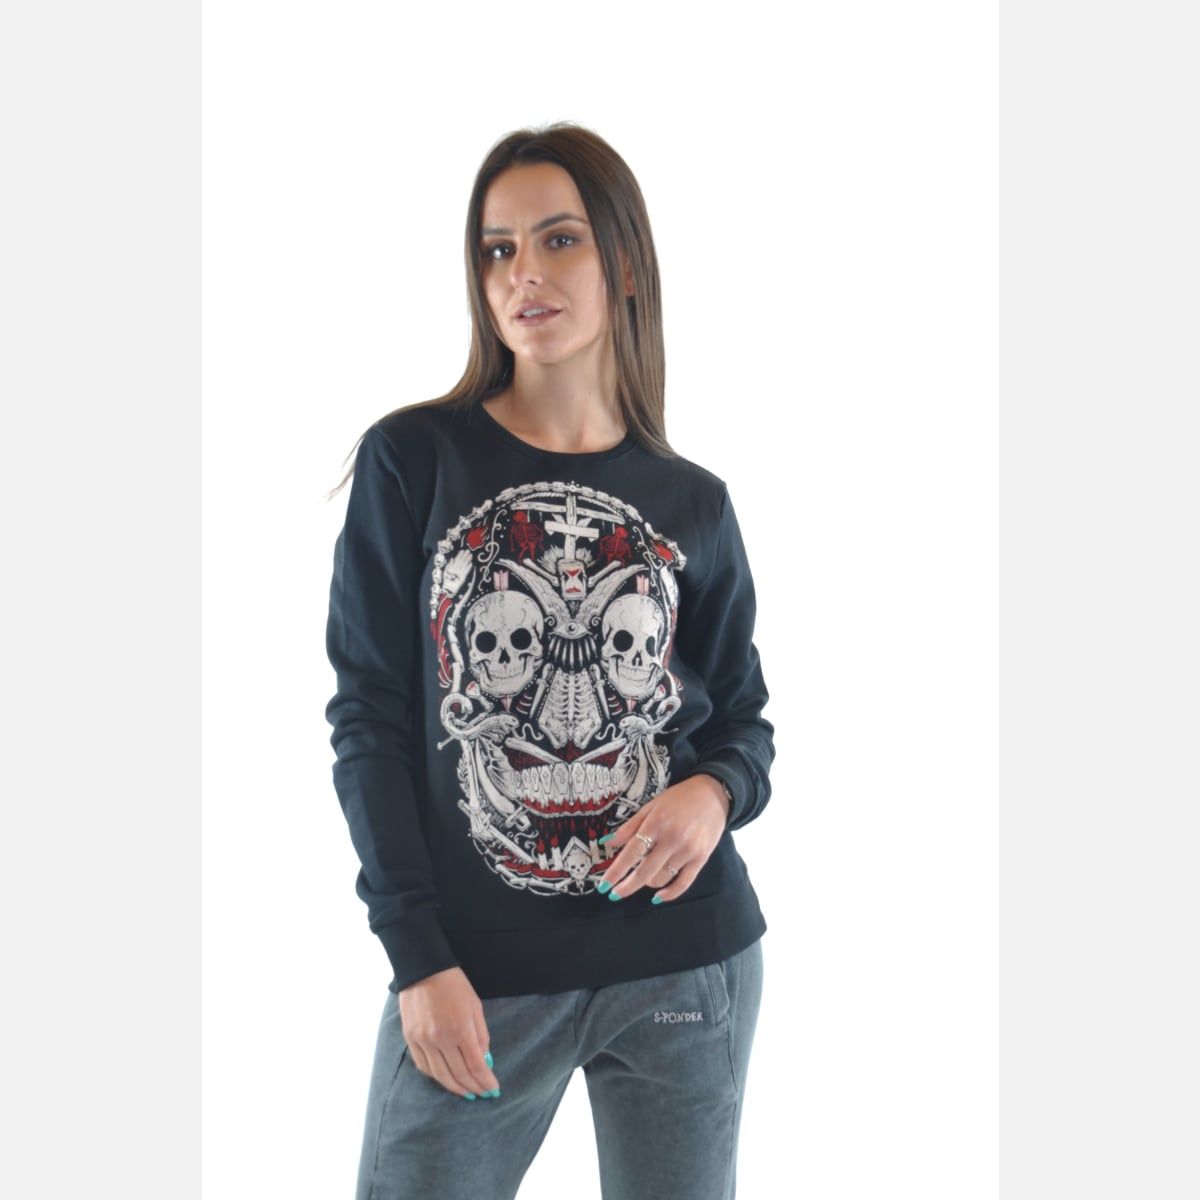 Black Skull Print Cotton Women Sweatshirt Long Sleeve S-Ponder